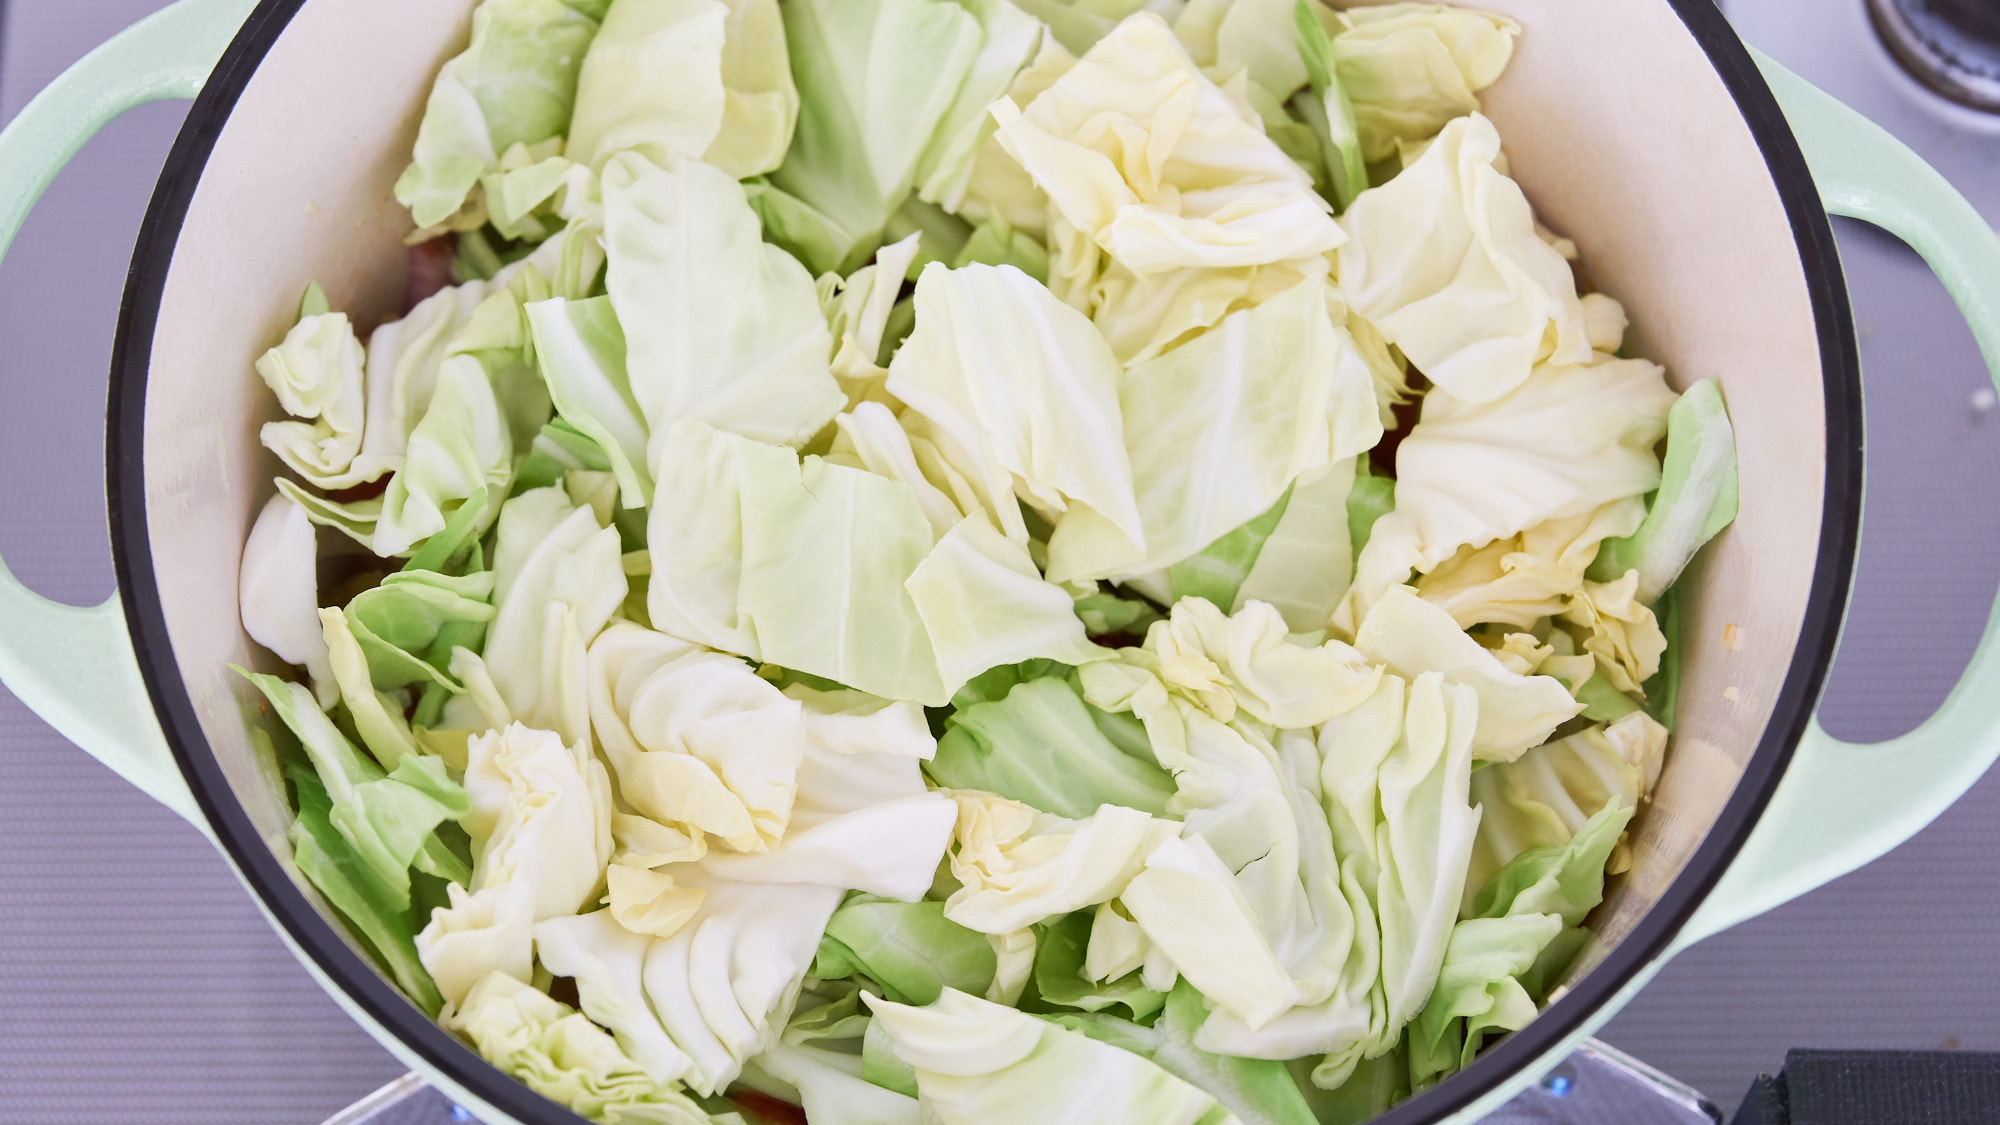 Pieces of cabbage in a green dutch oven.